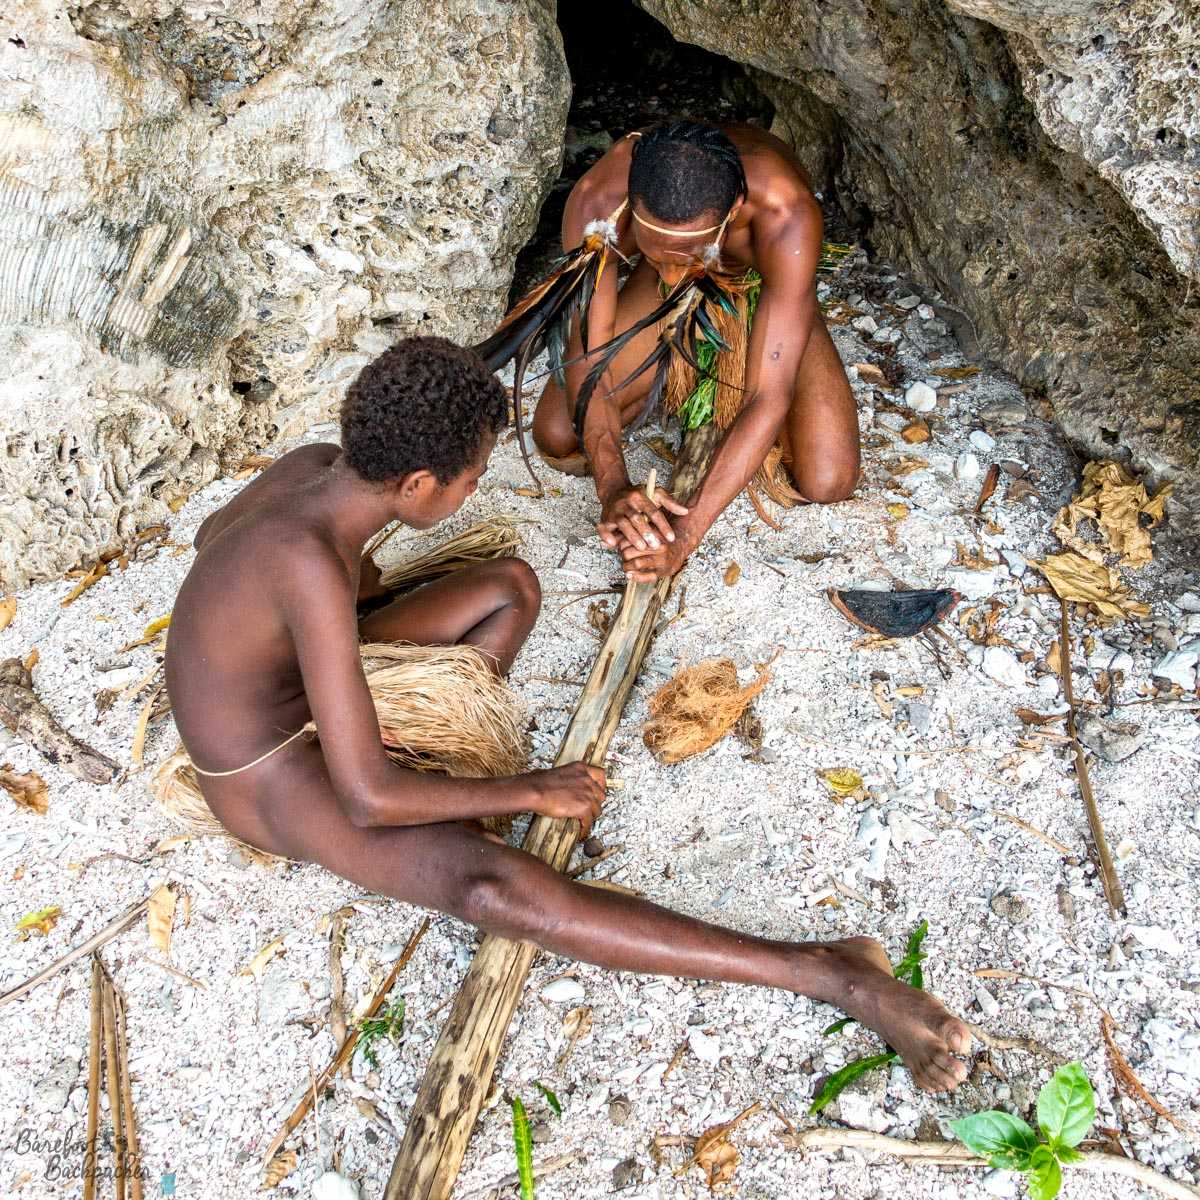 Tribesmen making fire.